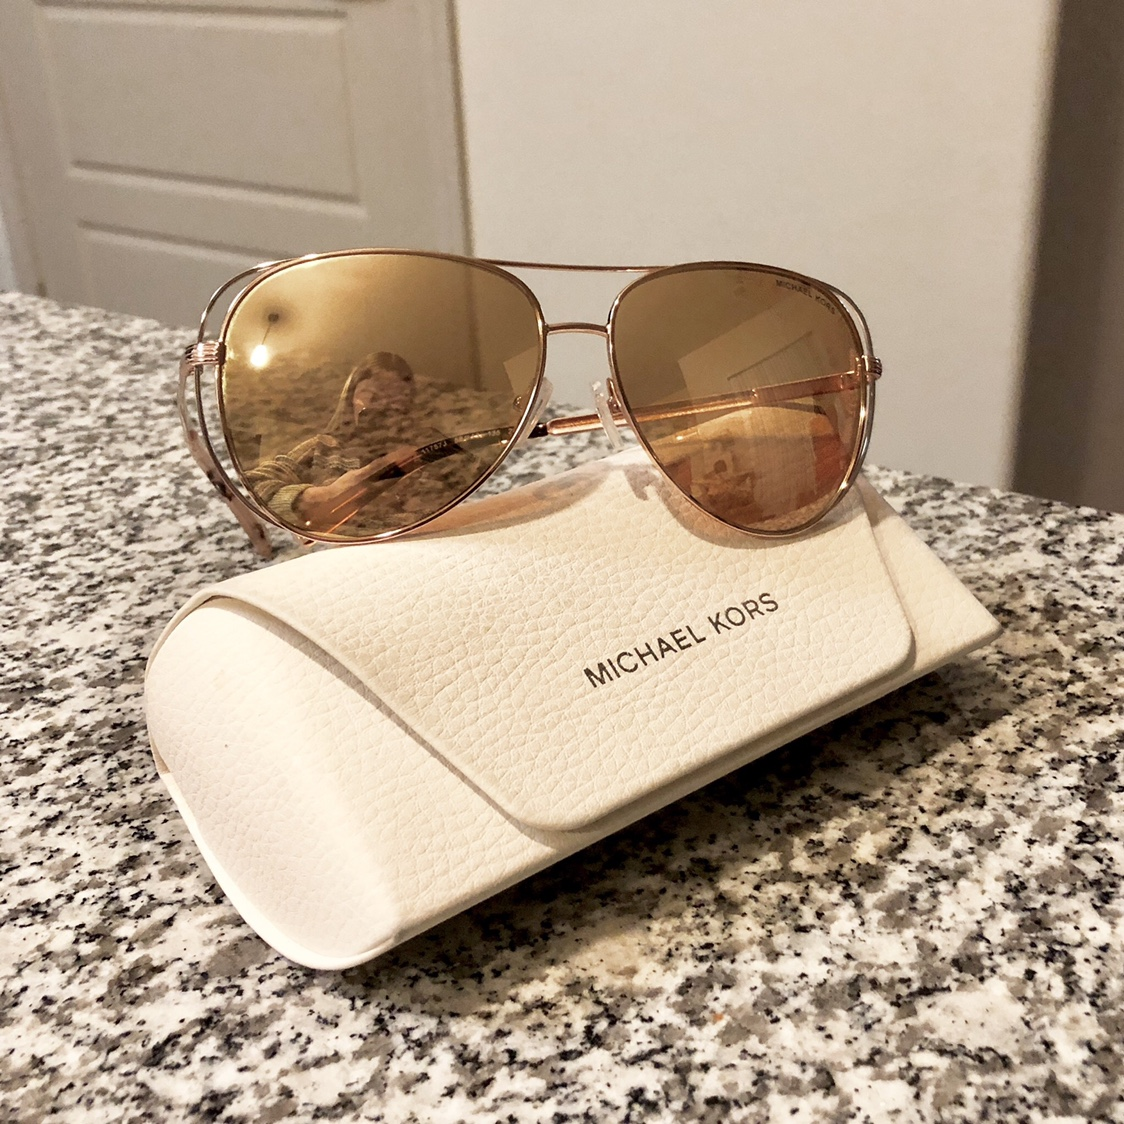 69634c004a9f Like new Michael Kors rose gold aviator sunglasses.... - Depop